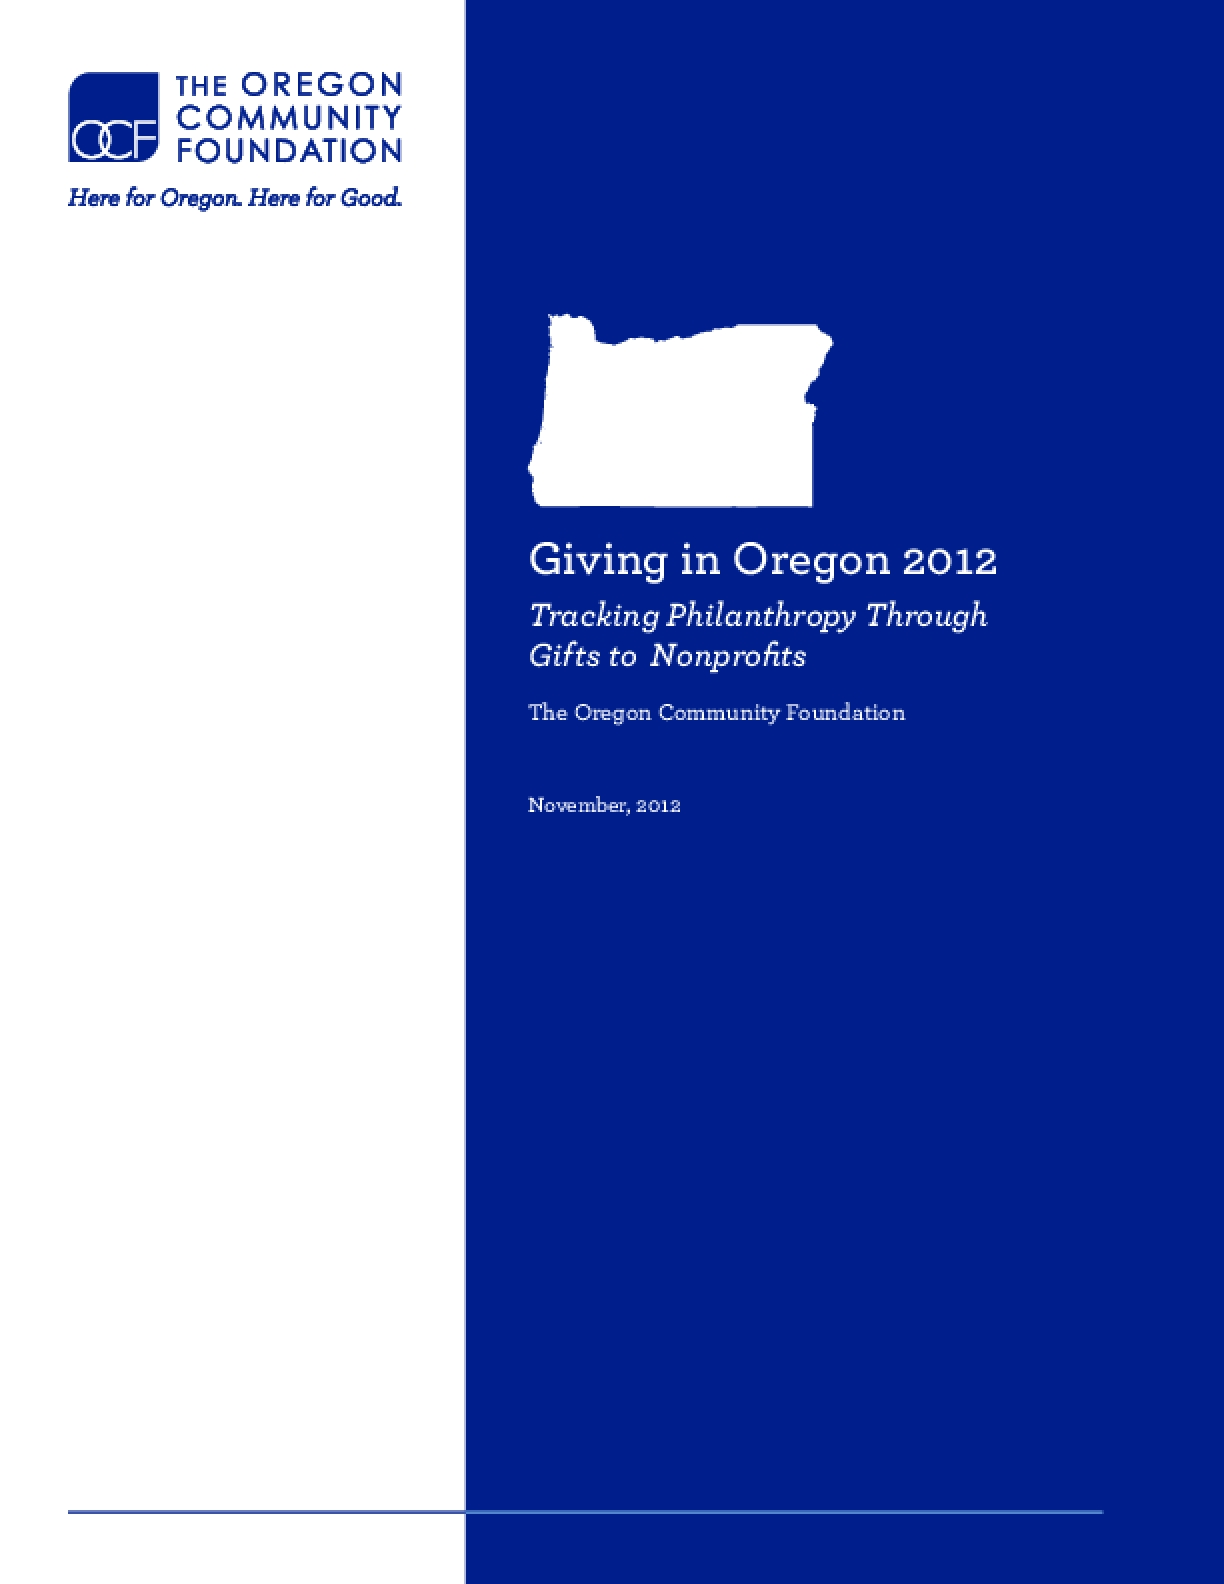 Giving in Oregon 2012 Tracking Philanthropy Through Gifts to Nonprofits